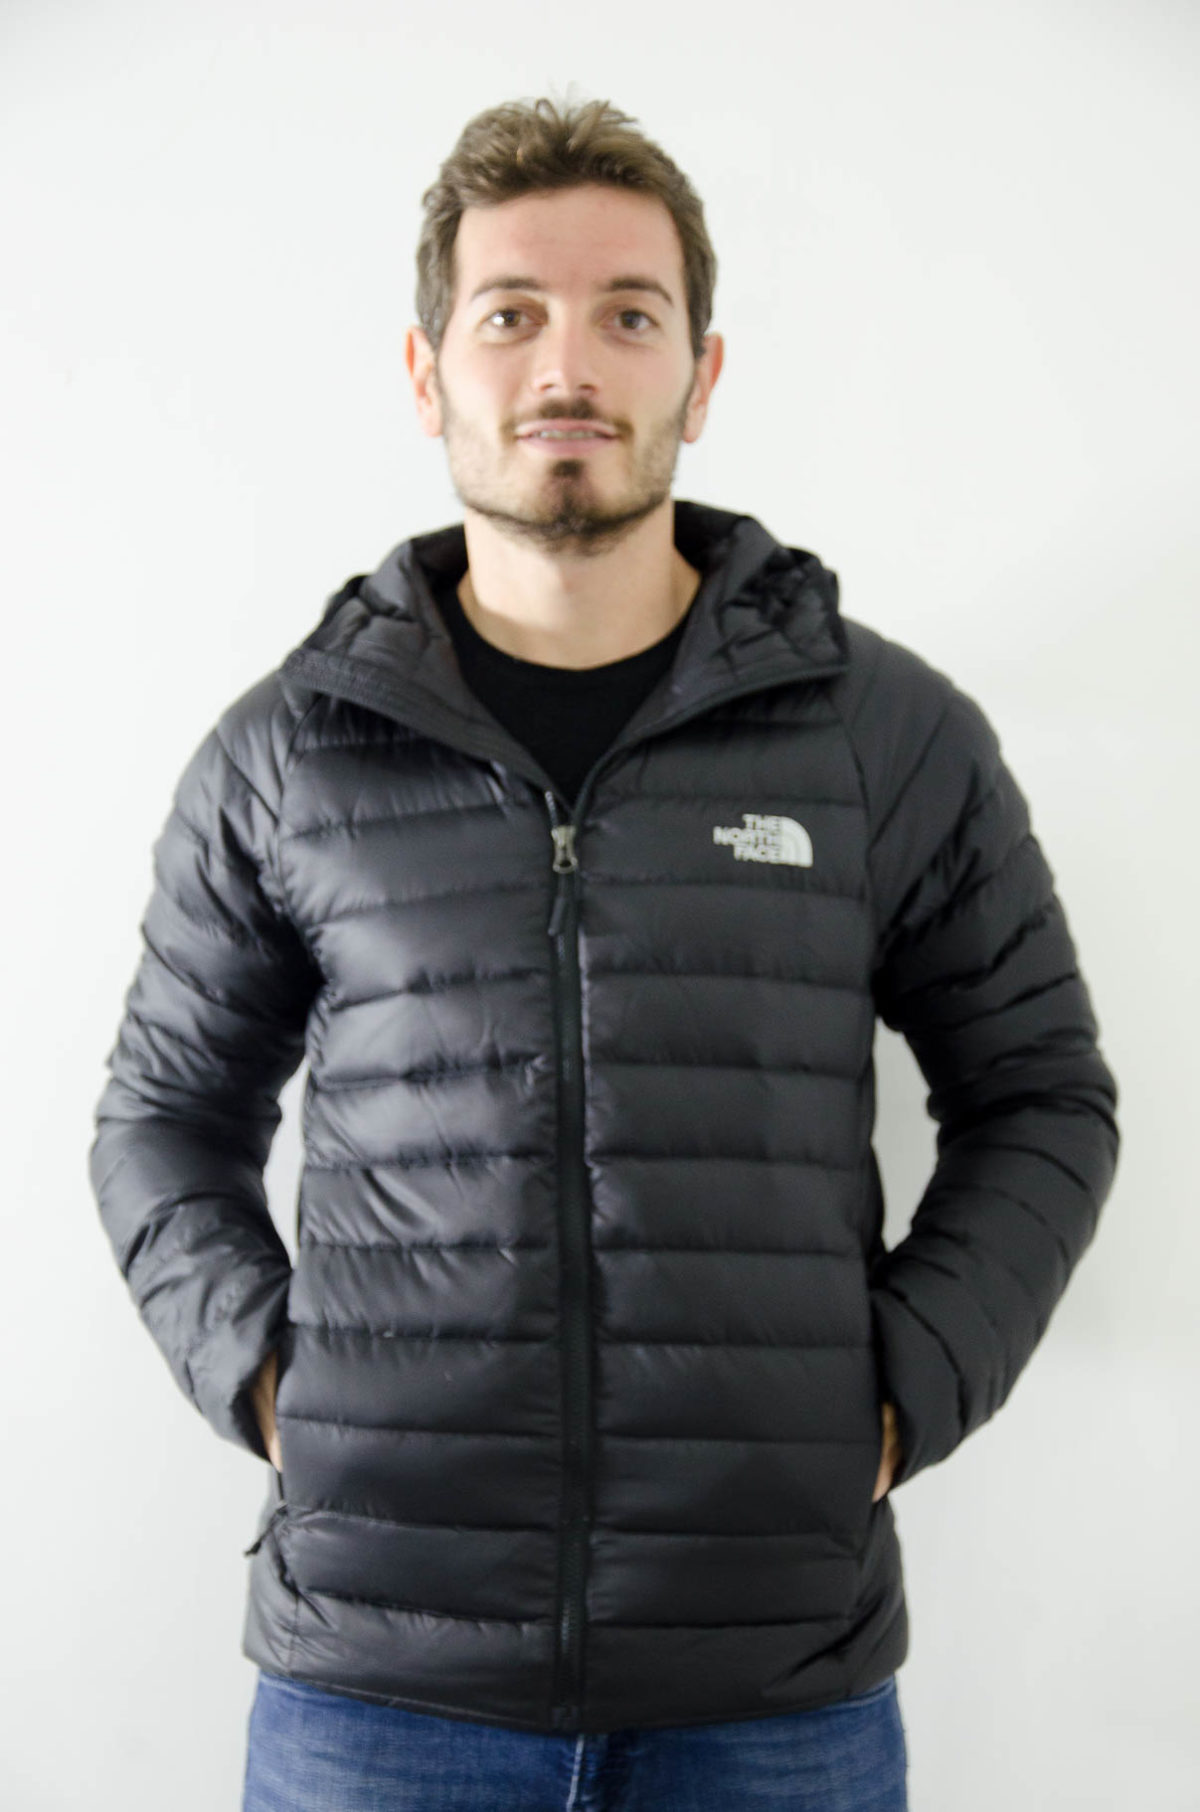 The North Face Giubbino Uomo